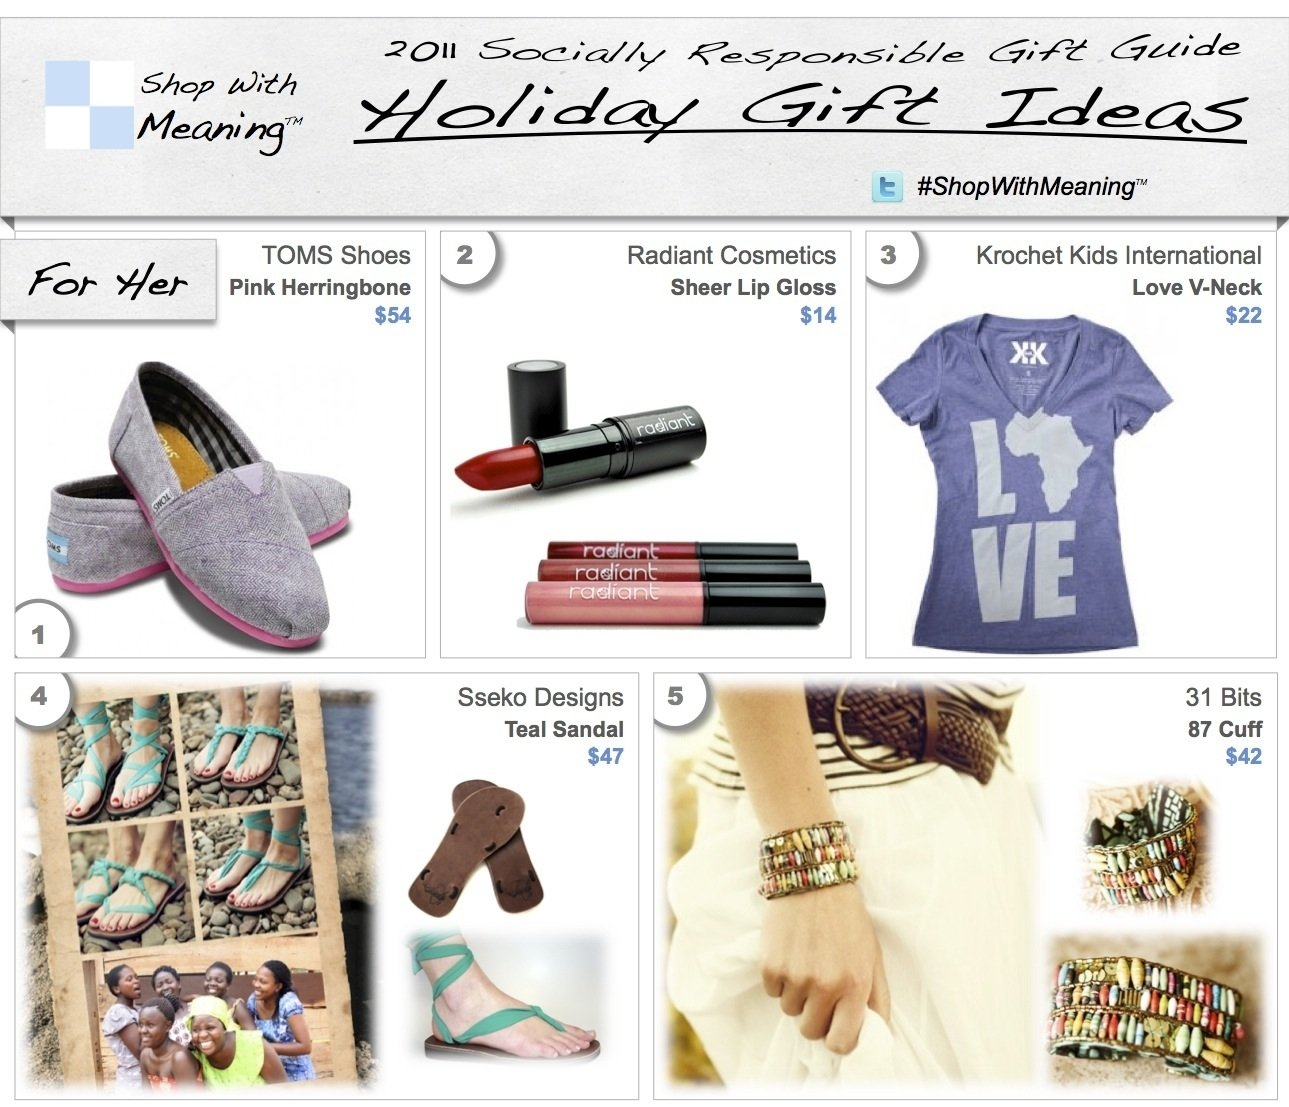 10 Great 2013 Gift Ideas For Women women gift ideas 1 2020